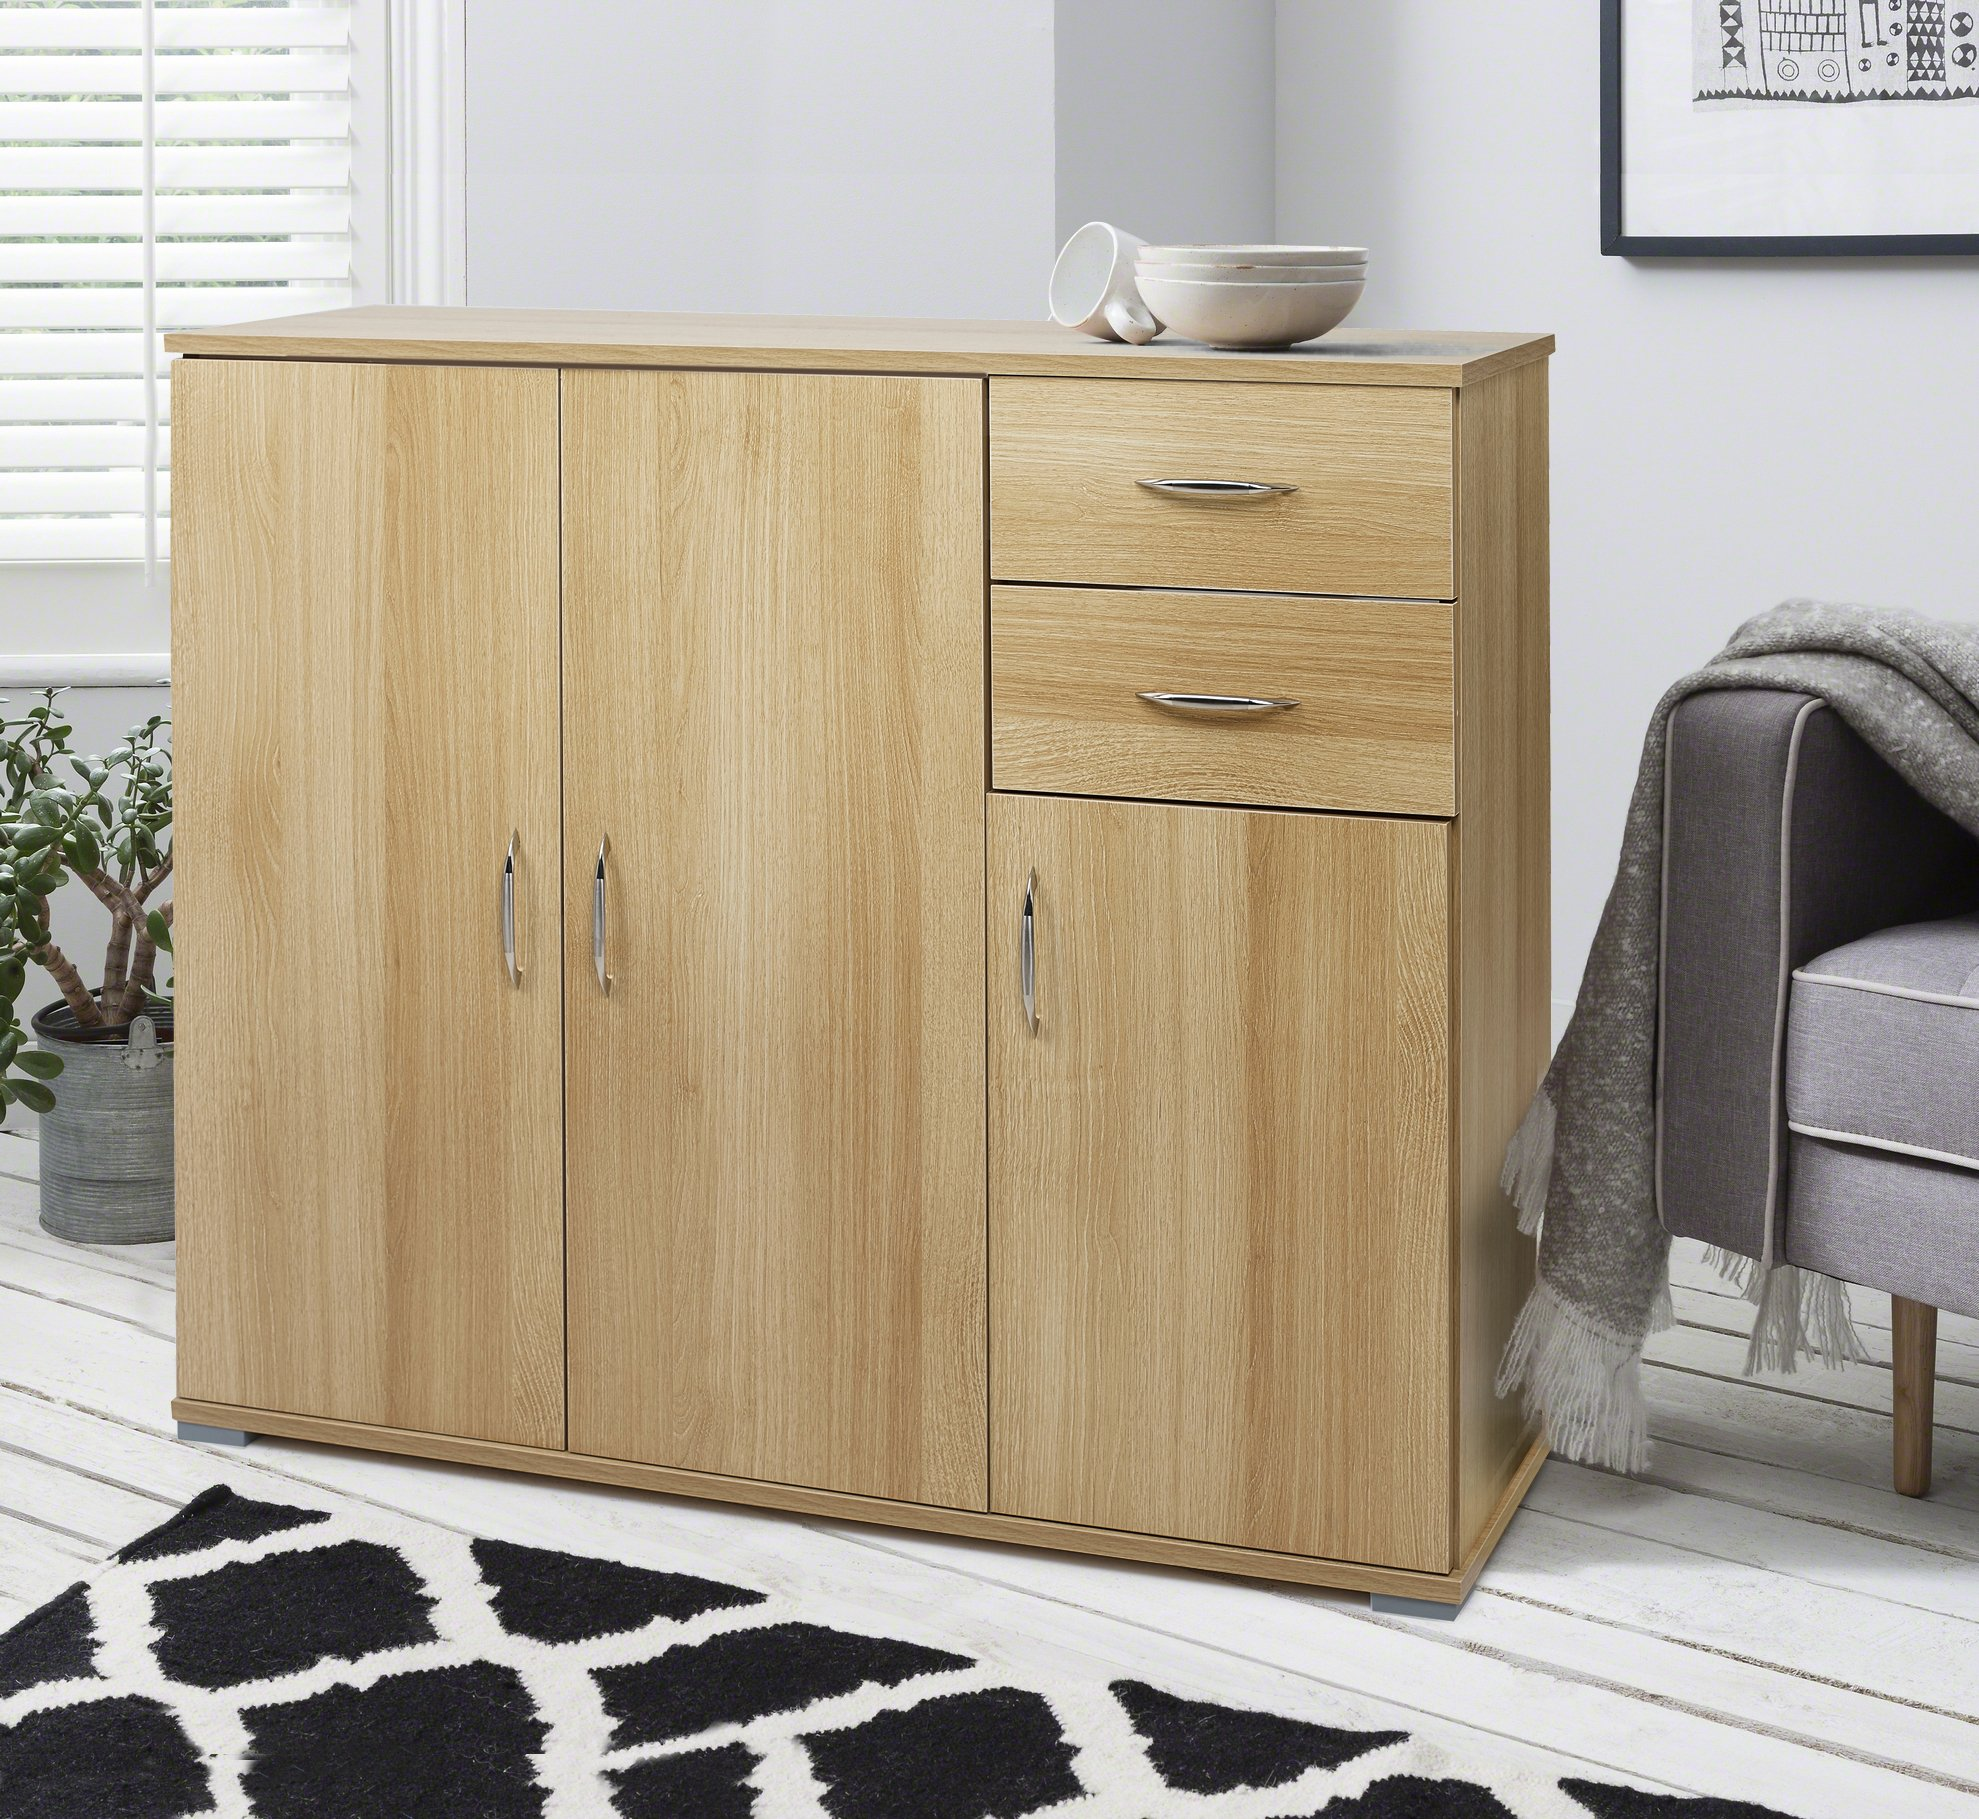 Merveilleux Laura James Sideboard U2013 Home Office Cupboard Cabinet Unit Chest U2013 With 2  Drawers And Shelf